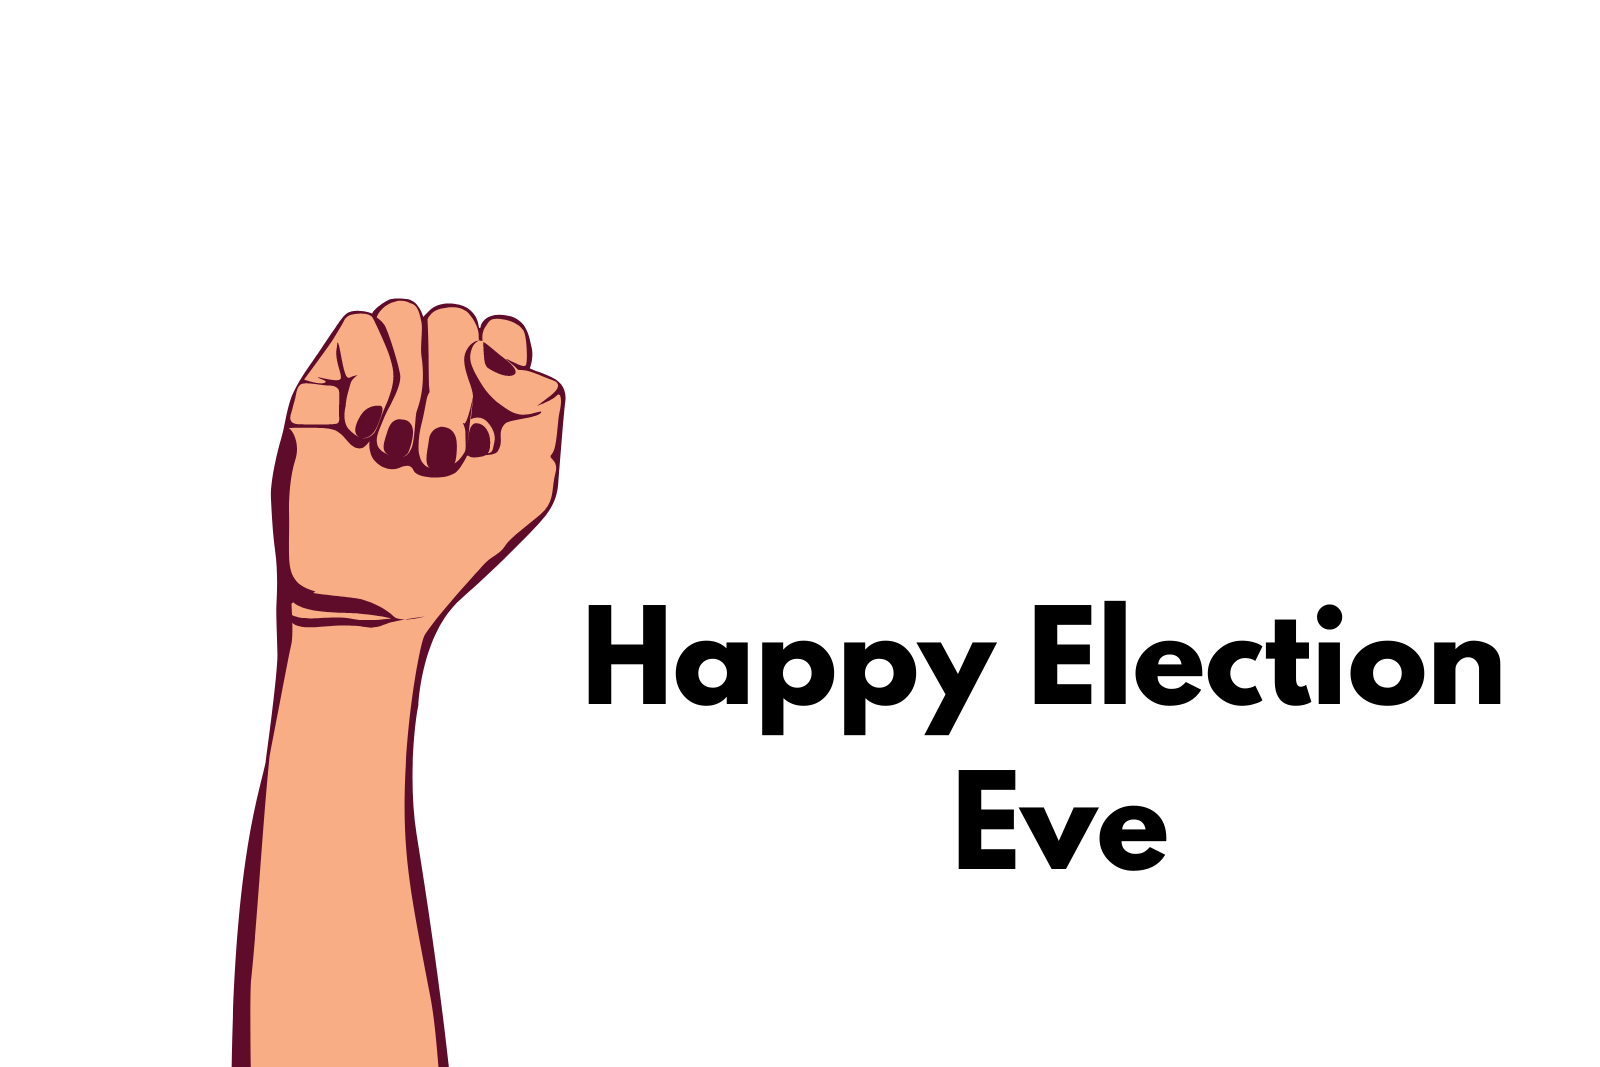 Bonus: Happy Election Eve